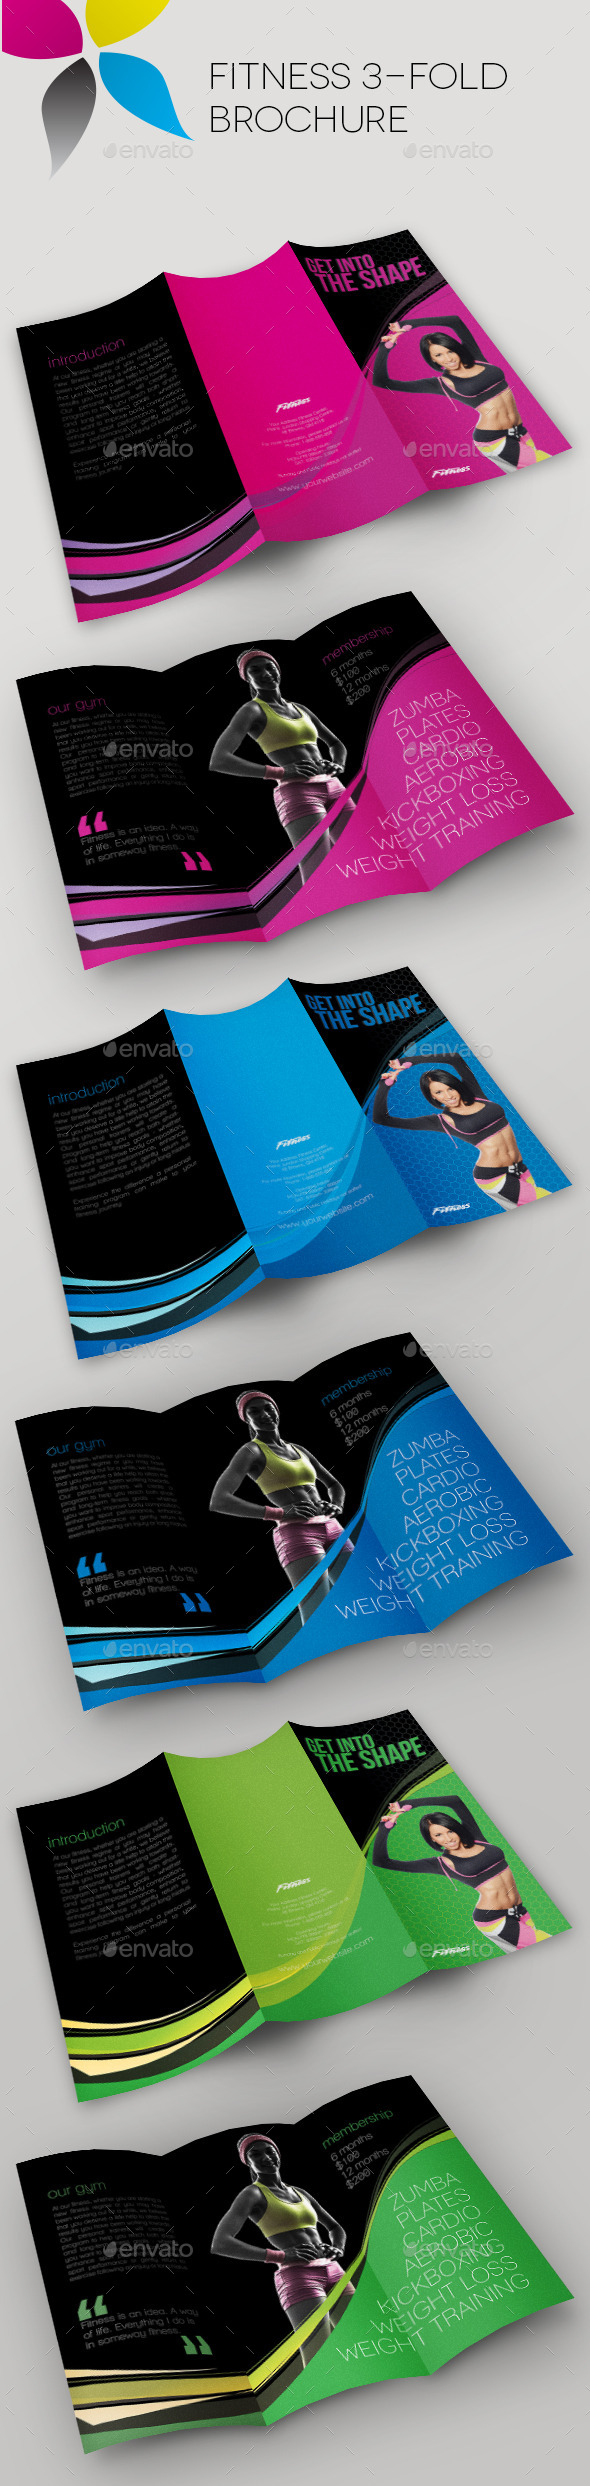 Fitness Fold Brochure Cs X  Fold Brochure Advert